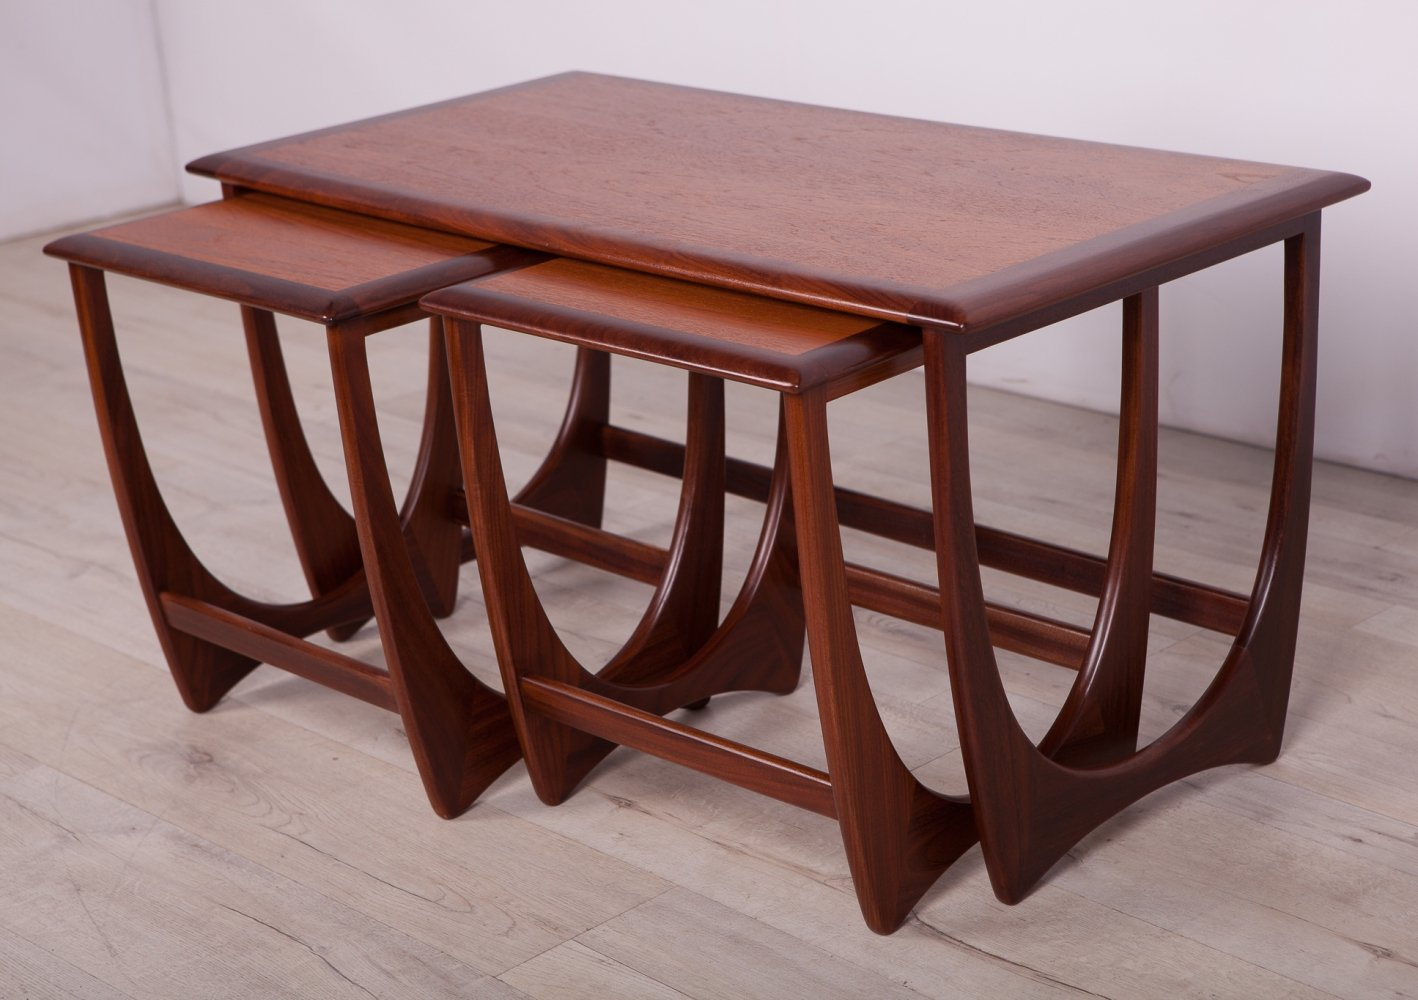 Set of 3 Nesting Tables by Victor Wilkins for G-Plan, 1960s